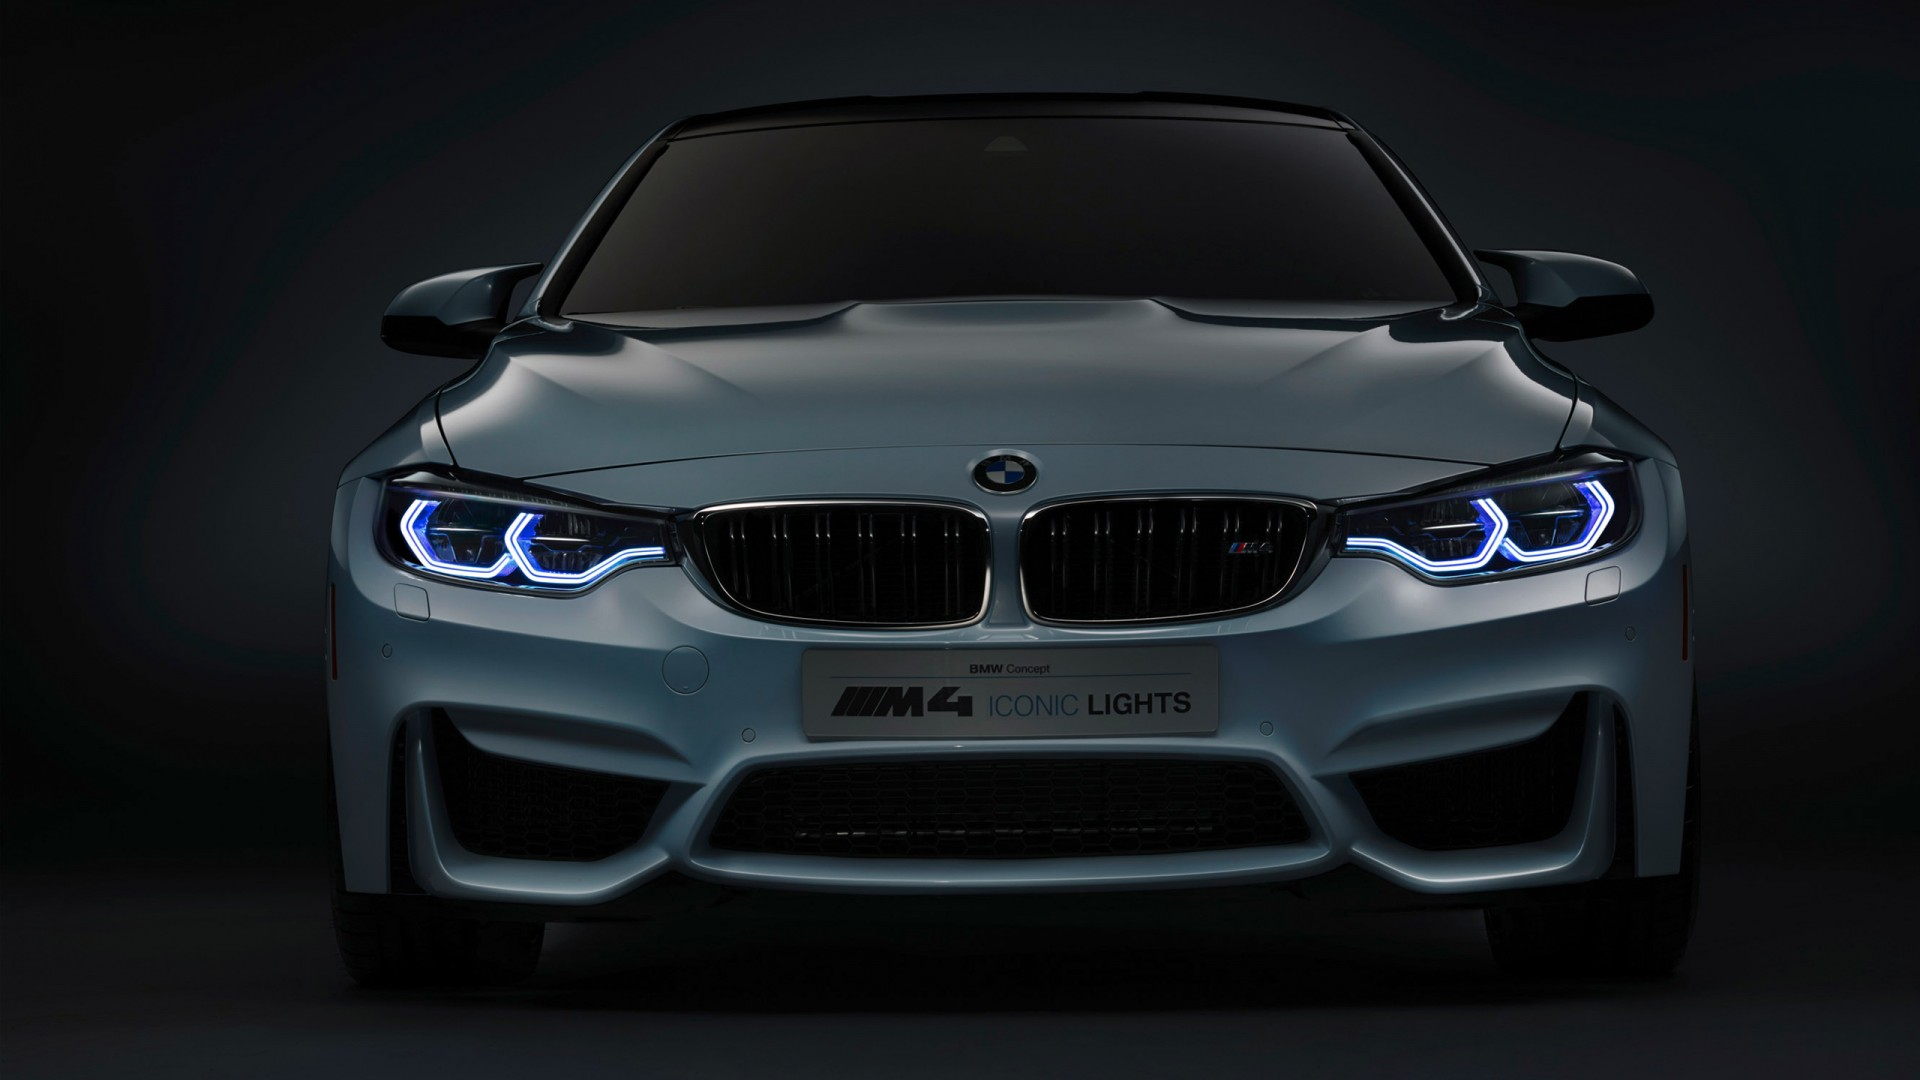 Iphone Wallpaper Muscle Car 2015 Bmw M4 Concept Iconic Lights Wallpaper Hd Car